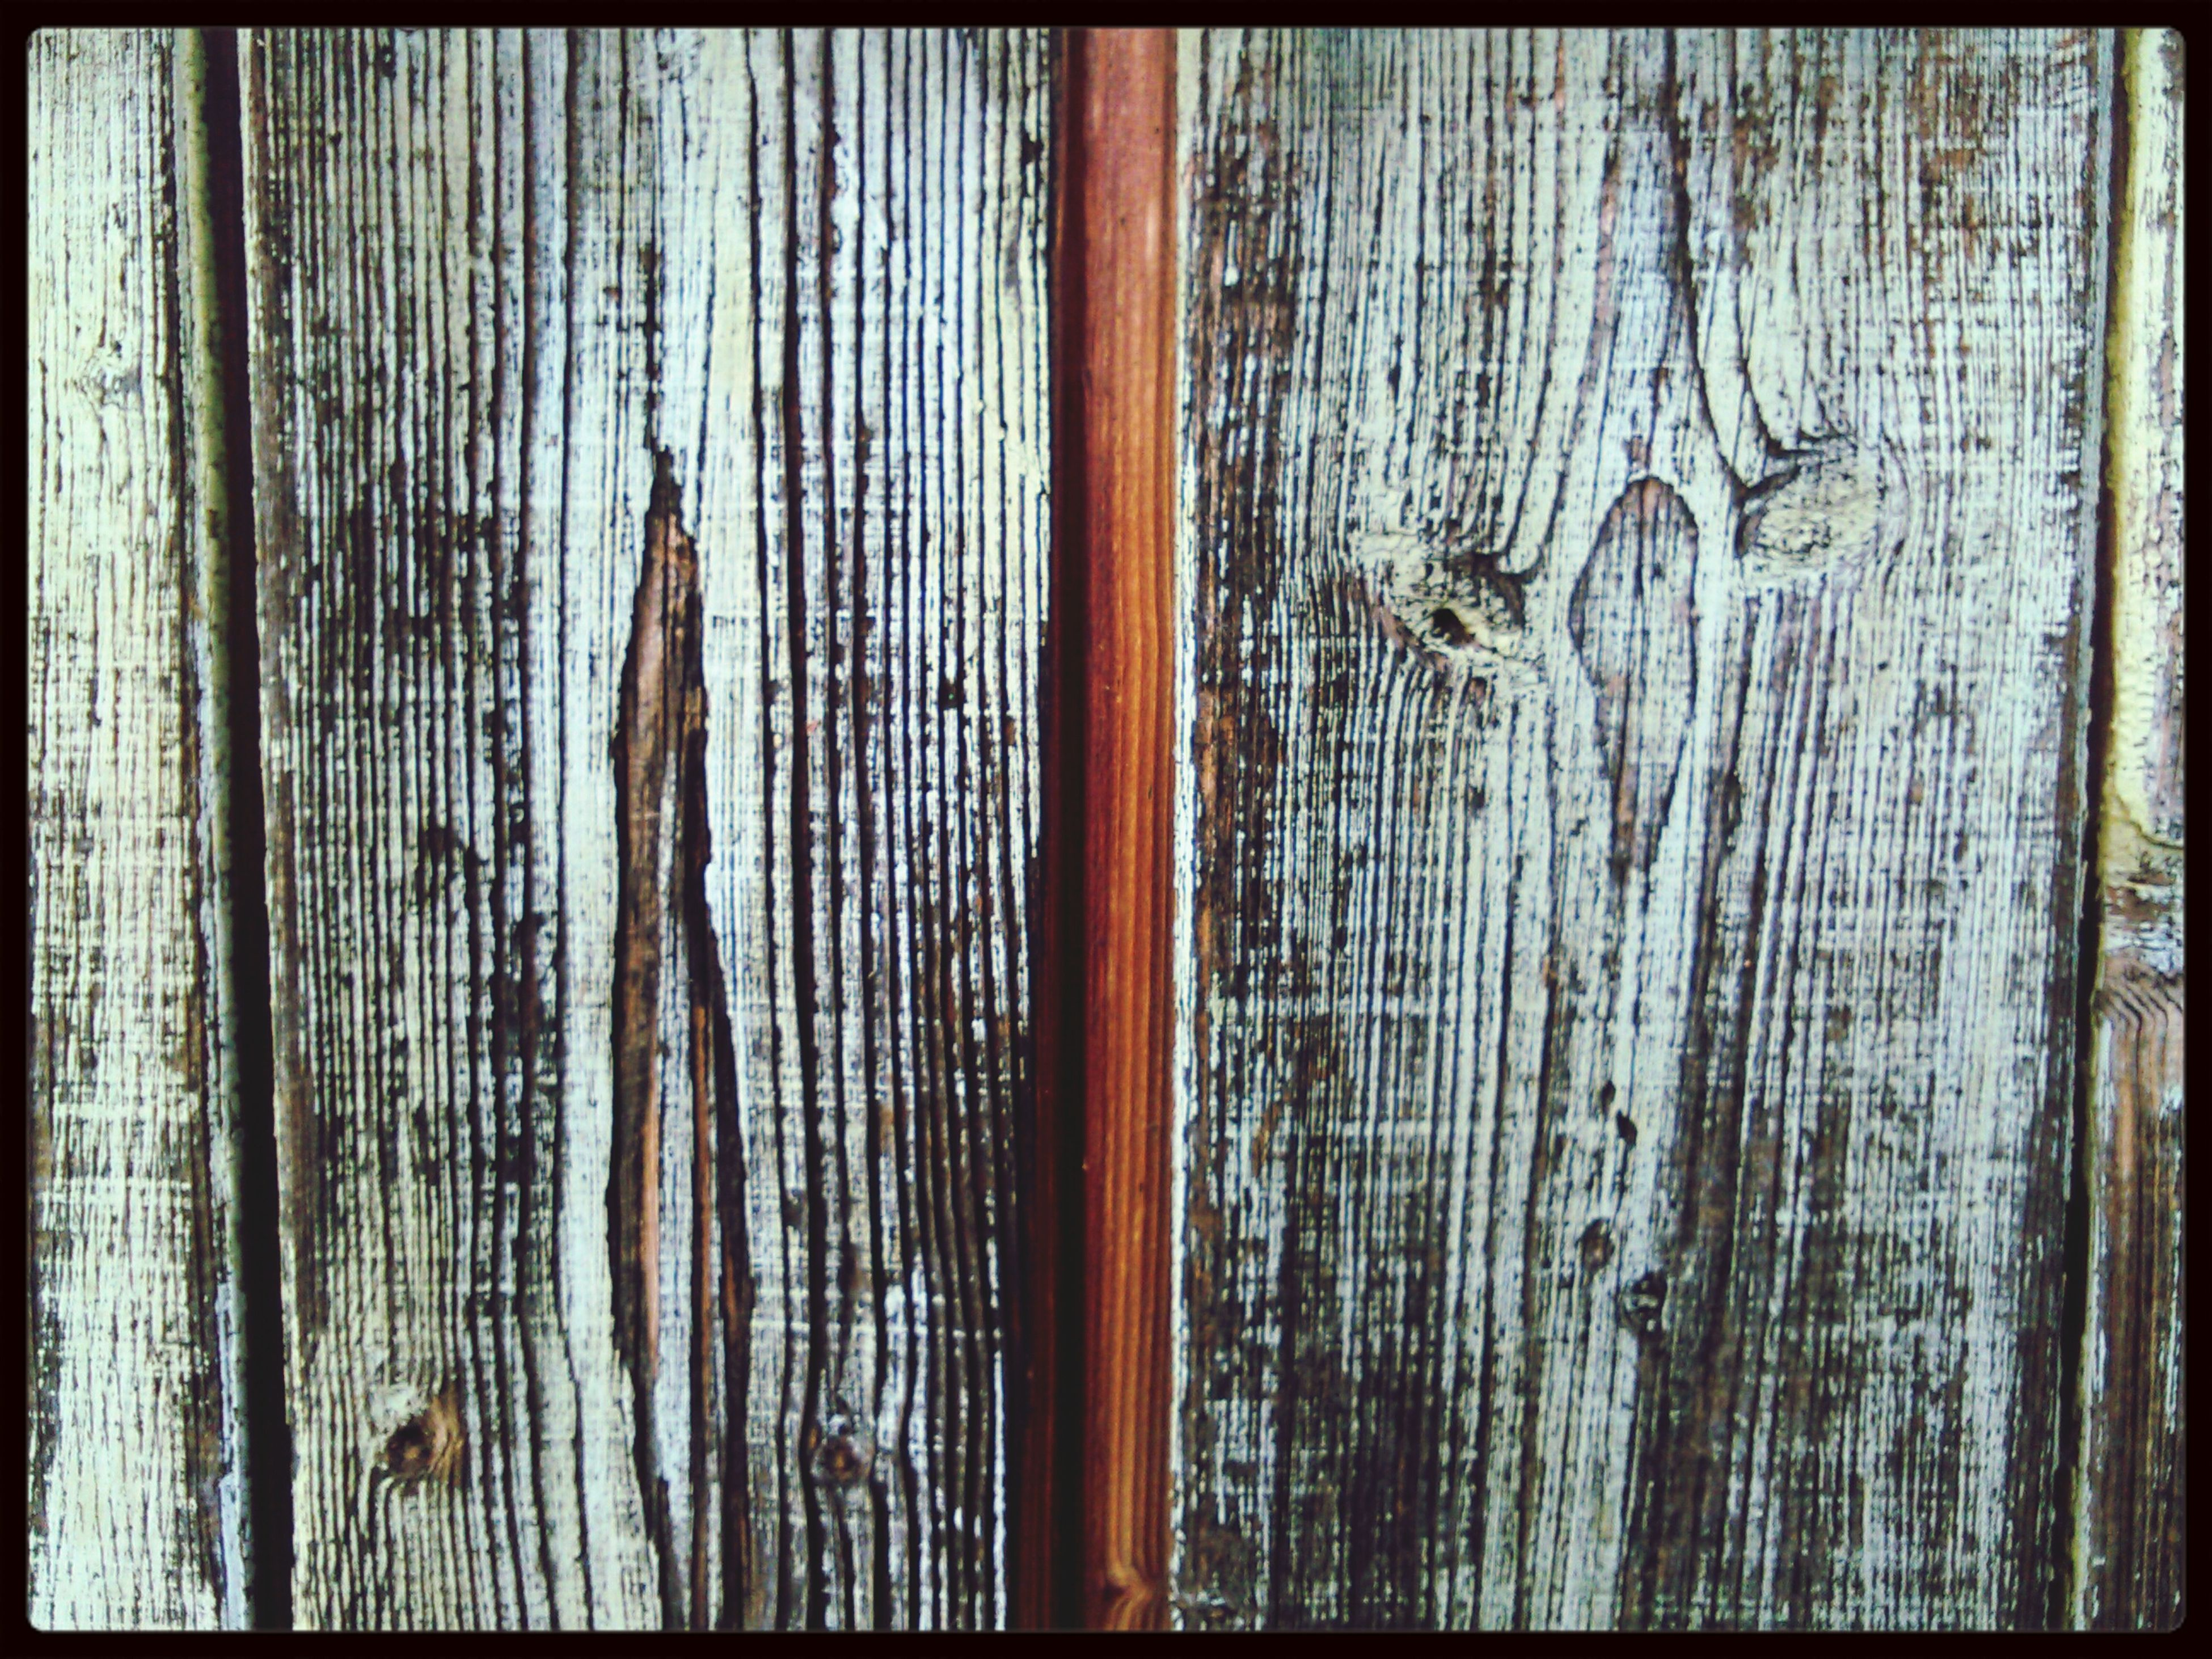 transfer print, auto post production filter, full frame, close-up, pattern, wood - material, metal, safety, indoors, protection, closed, door, backgrounds, curtain, textured, window, security, fence, hanging, day